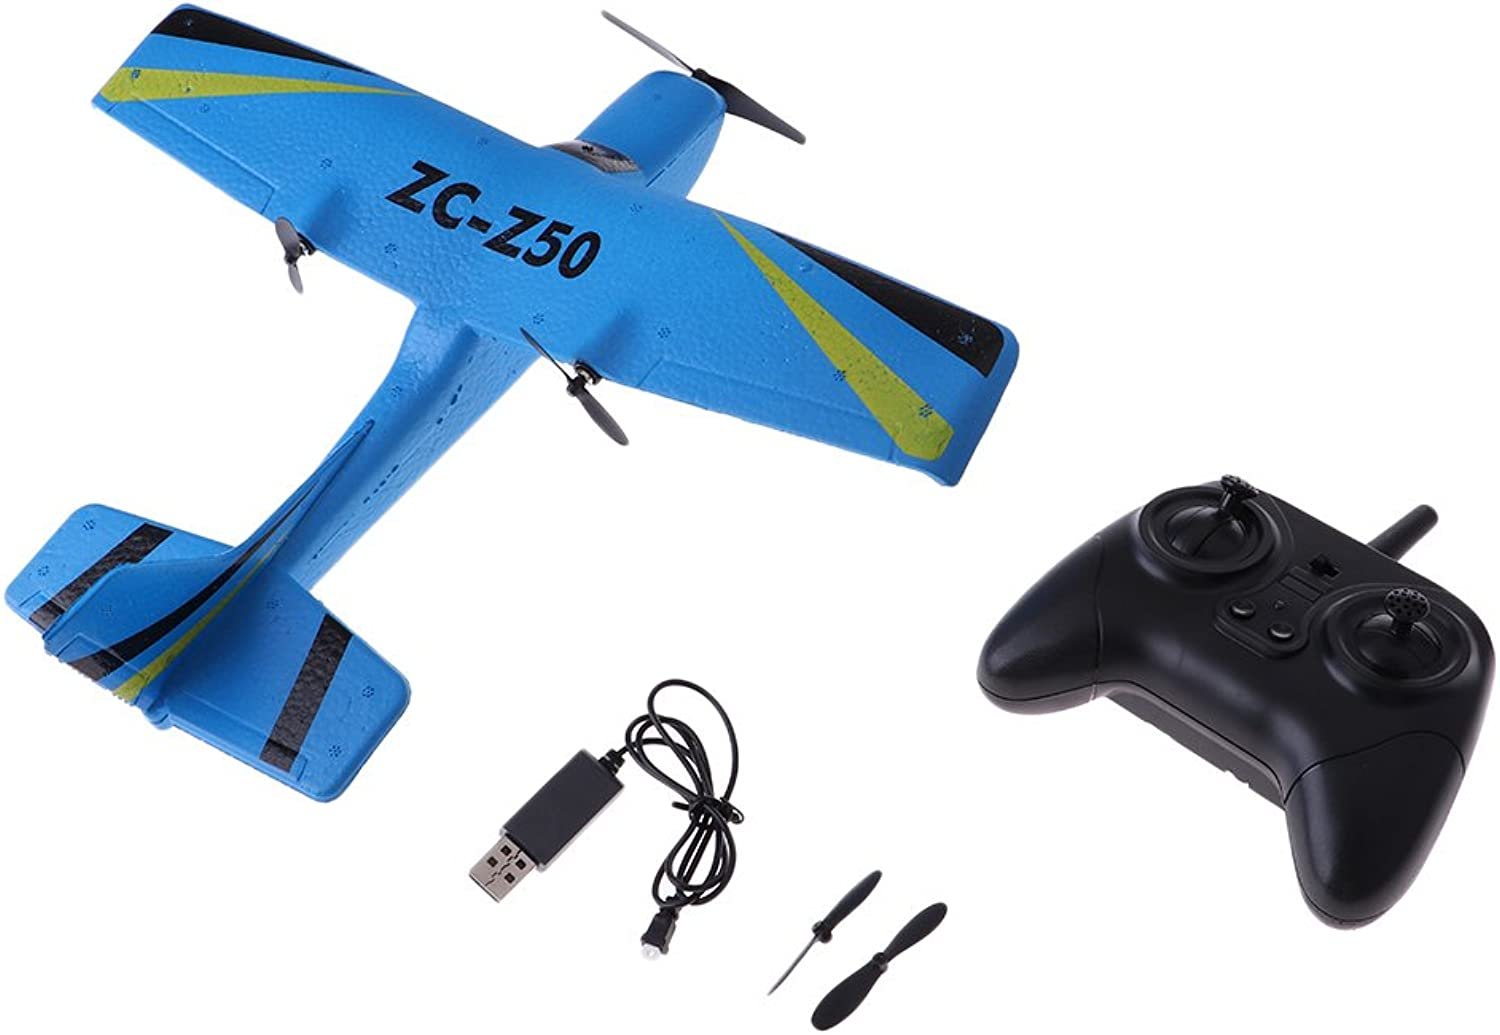 D DOLITY Z50 EPP RC bluee Helicopter Plane Glider Airplane 2CH 2.4G with USB Charging Line